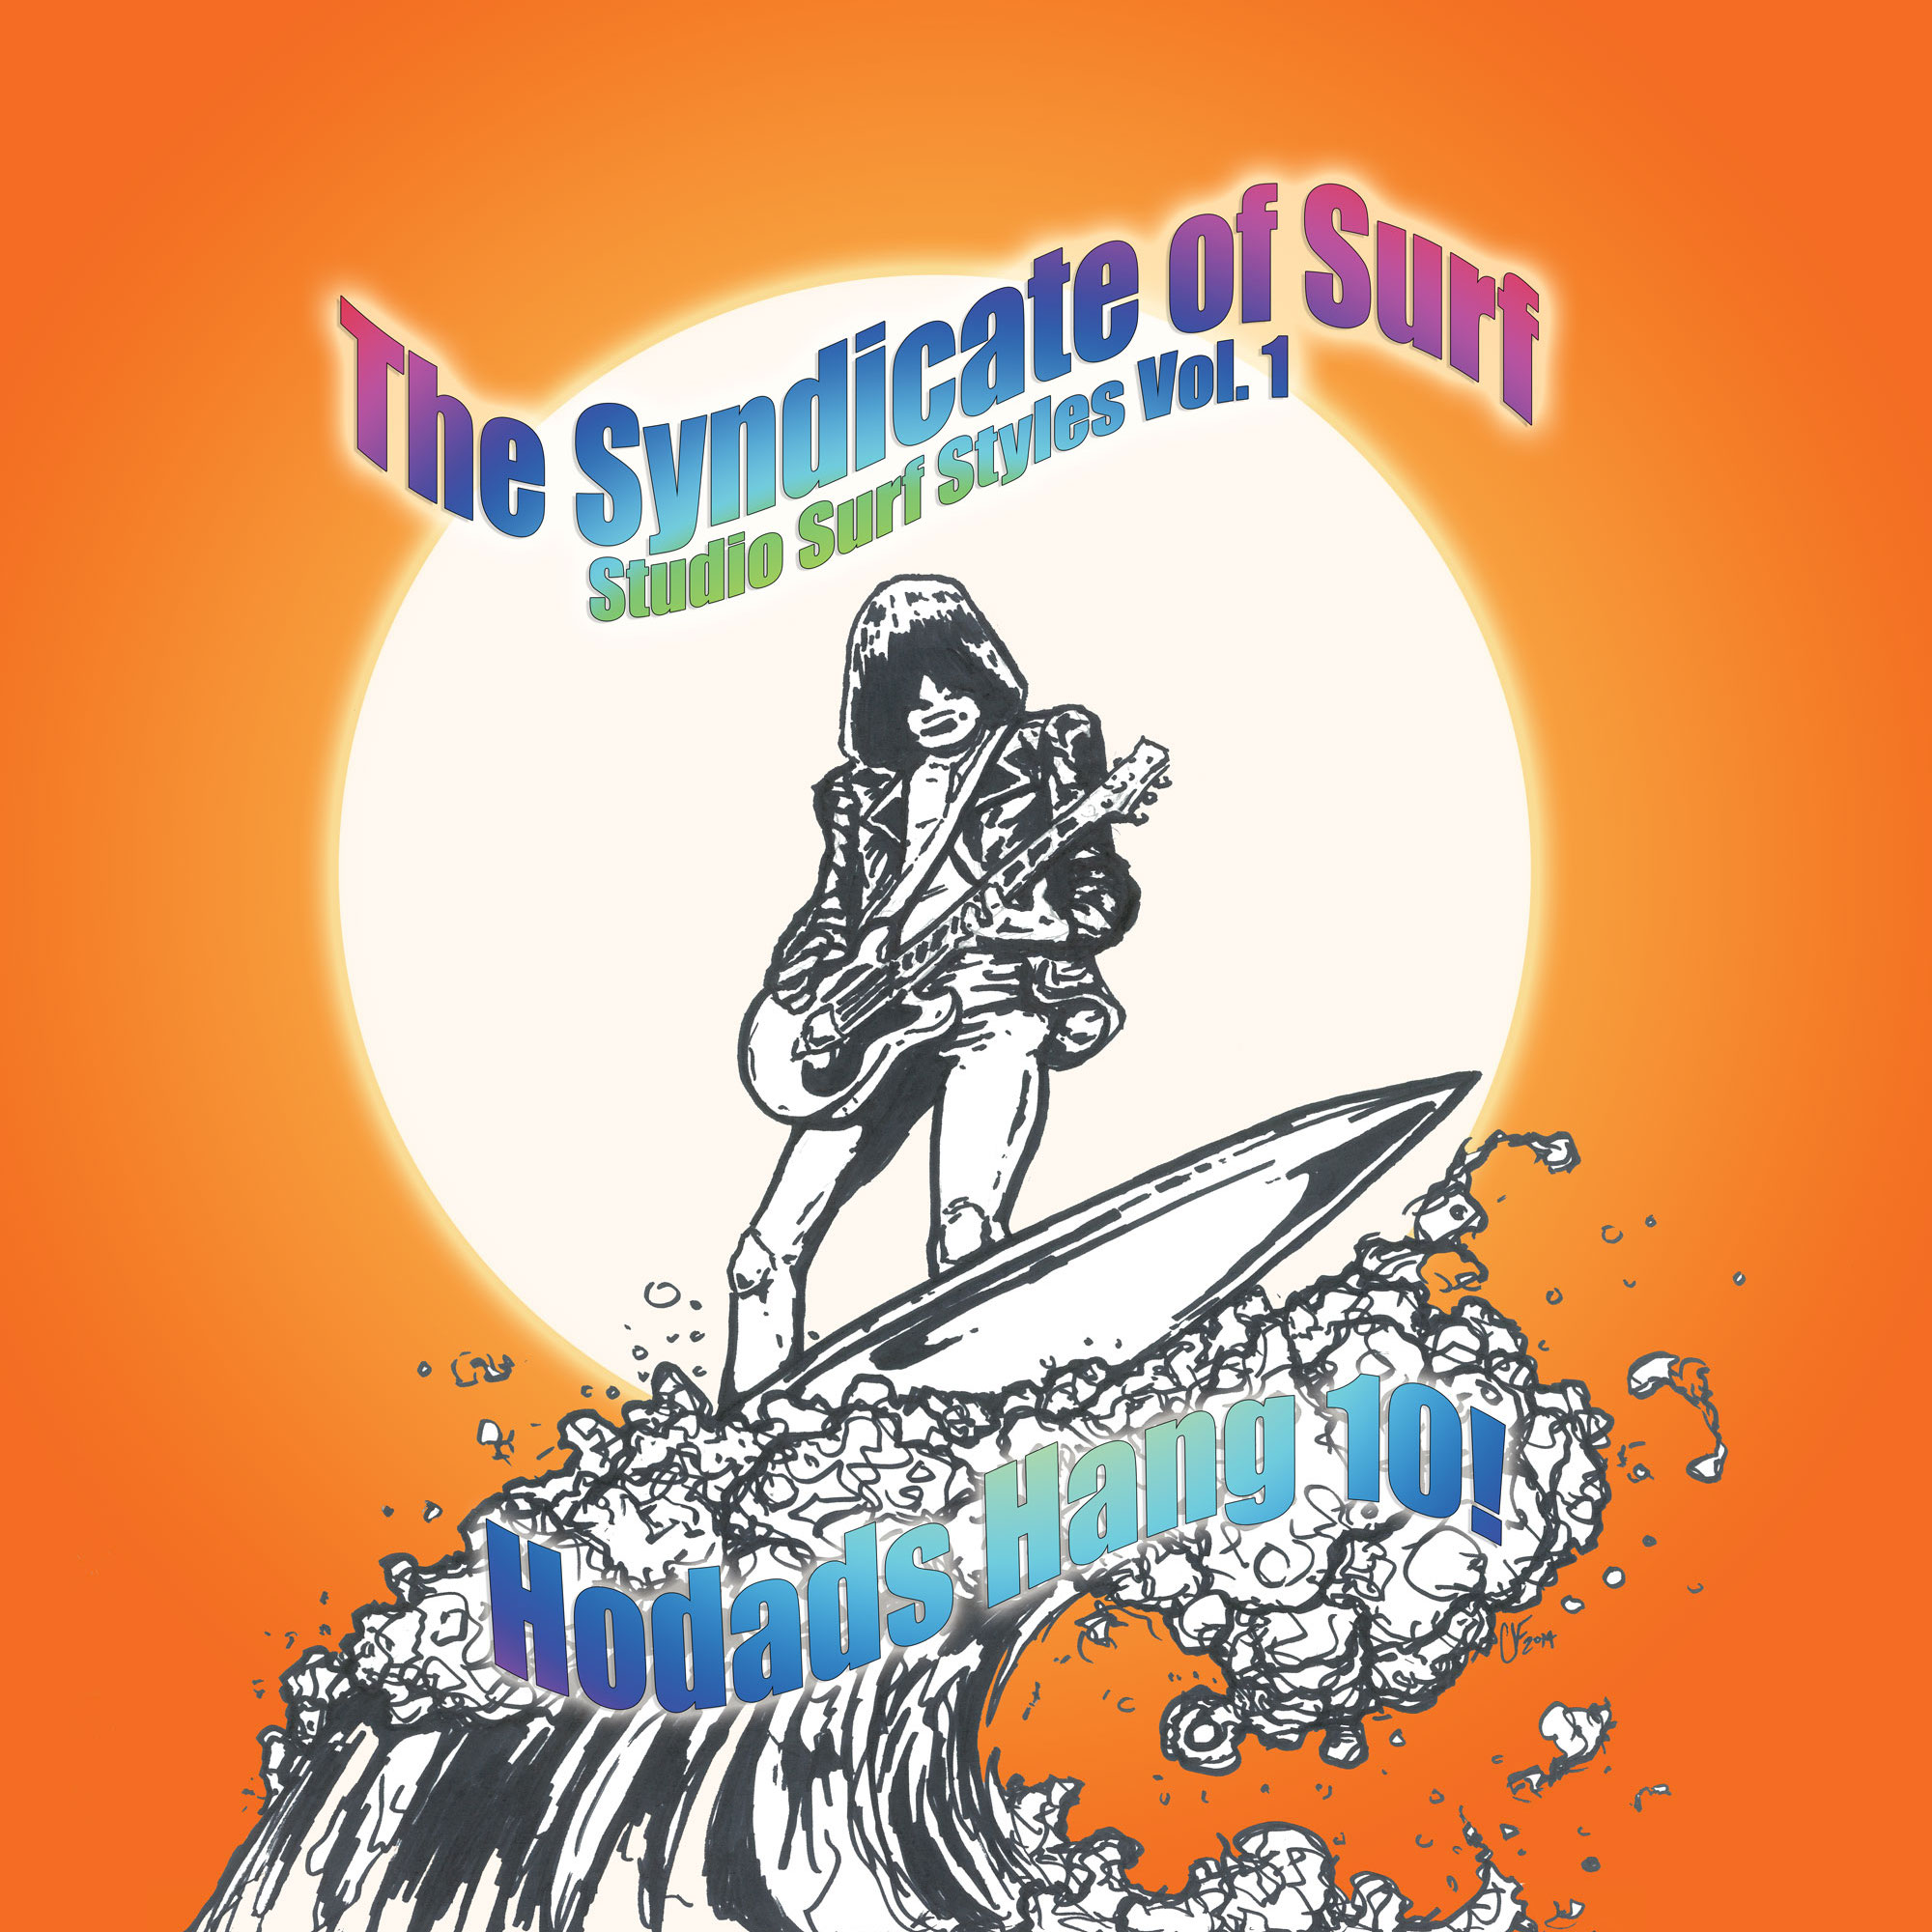 SRW007 The Syndicate of Surf - Studio Surf Styles Volume 1 Hodads Hang 10! (Digital Download)